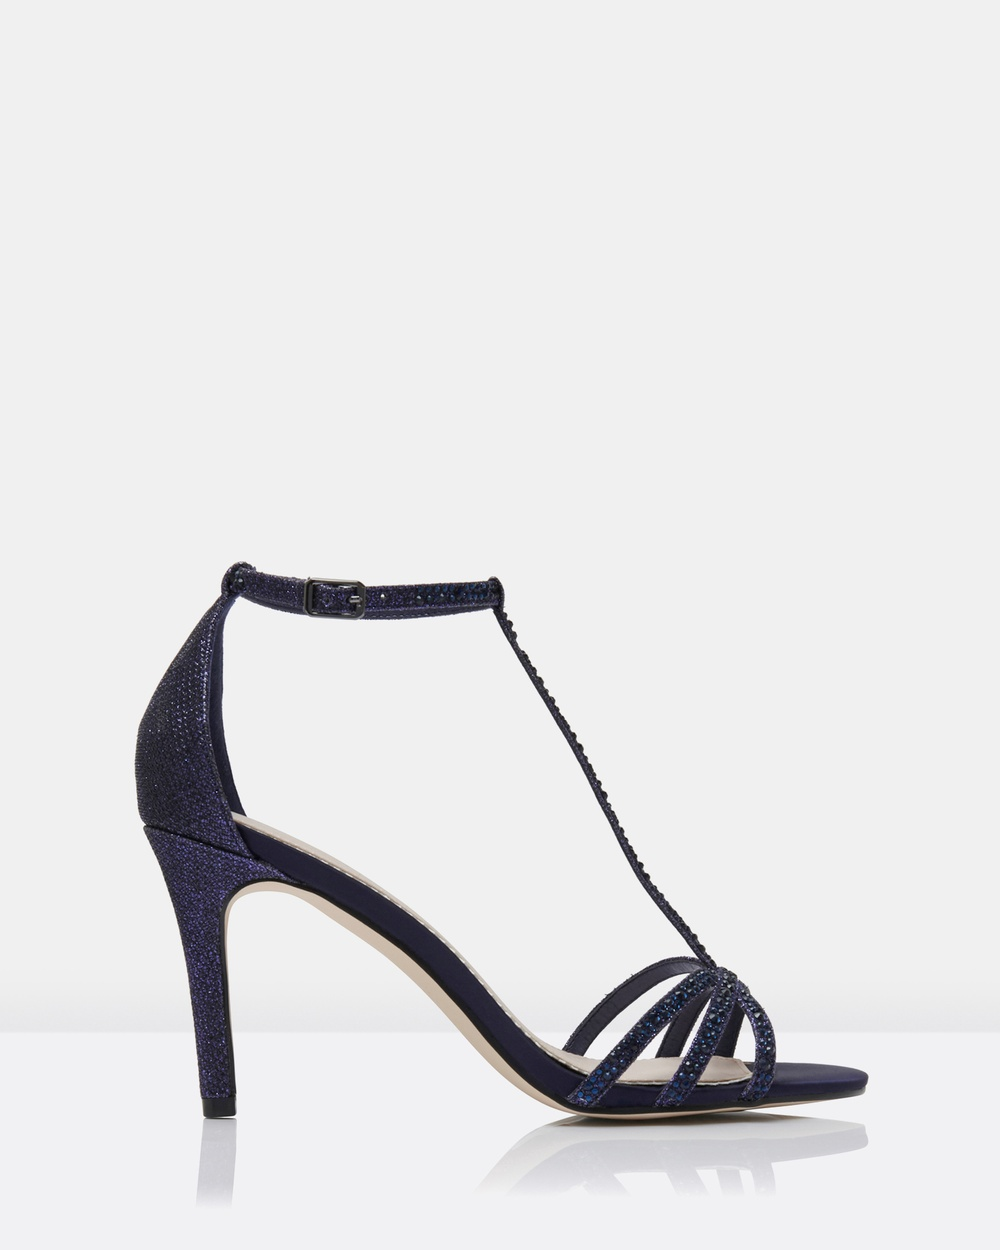 Forever New Juliette Heatfix Low Heeled Sandals Heels Navy Juliette Heatfix Low Heeled Sandals